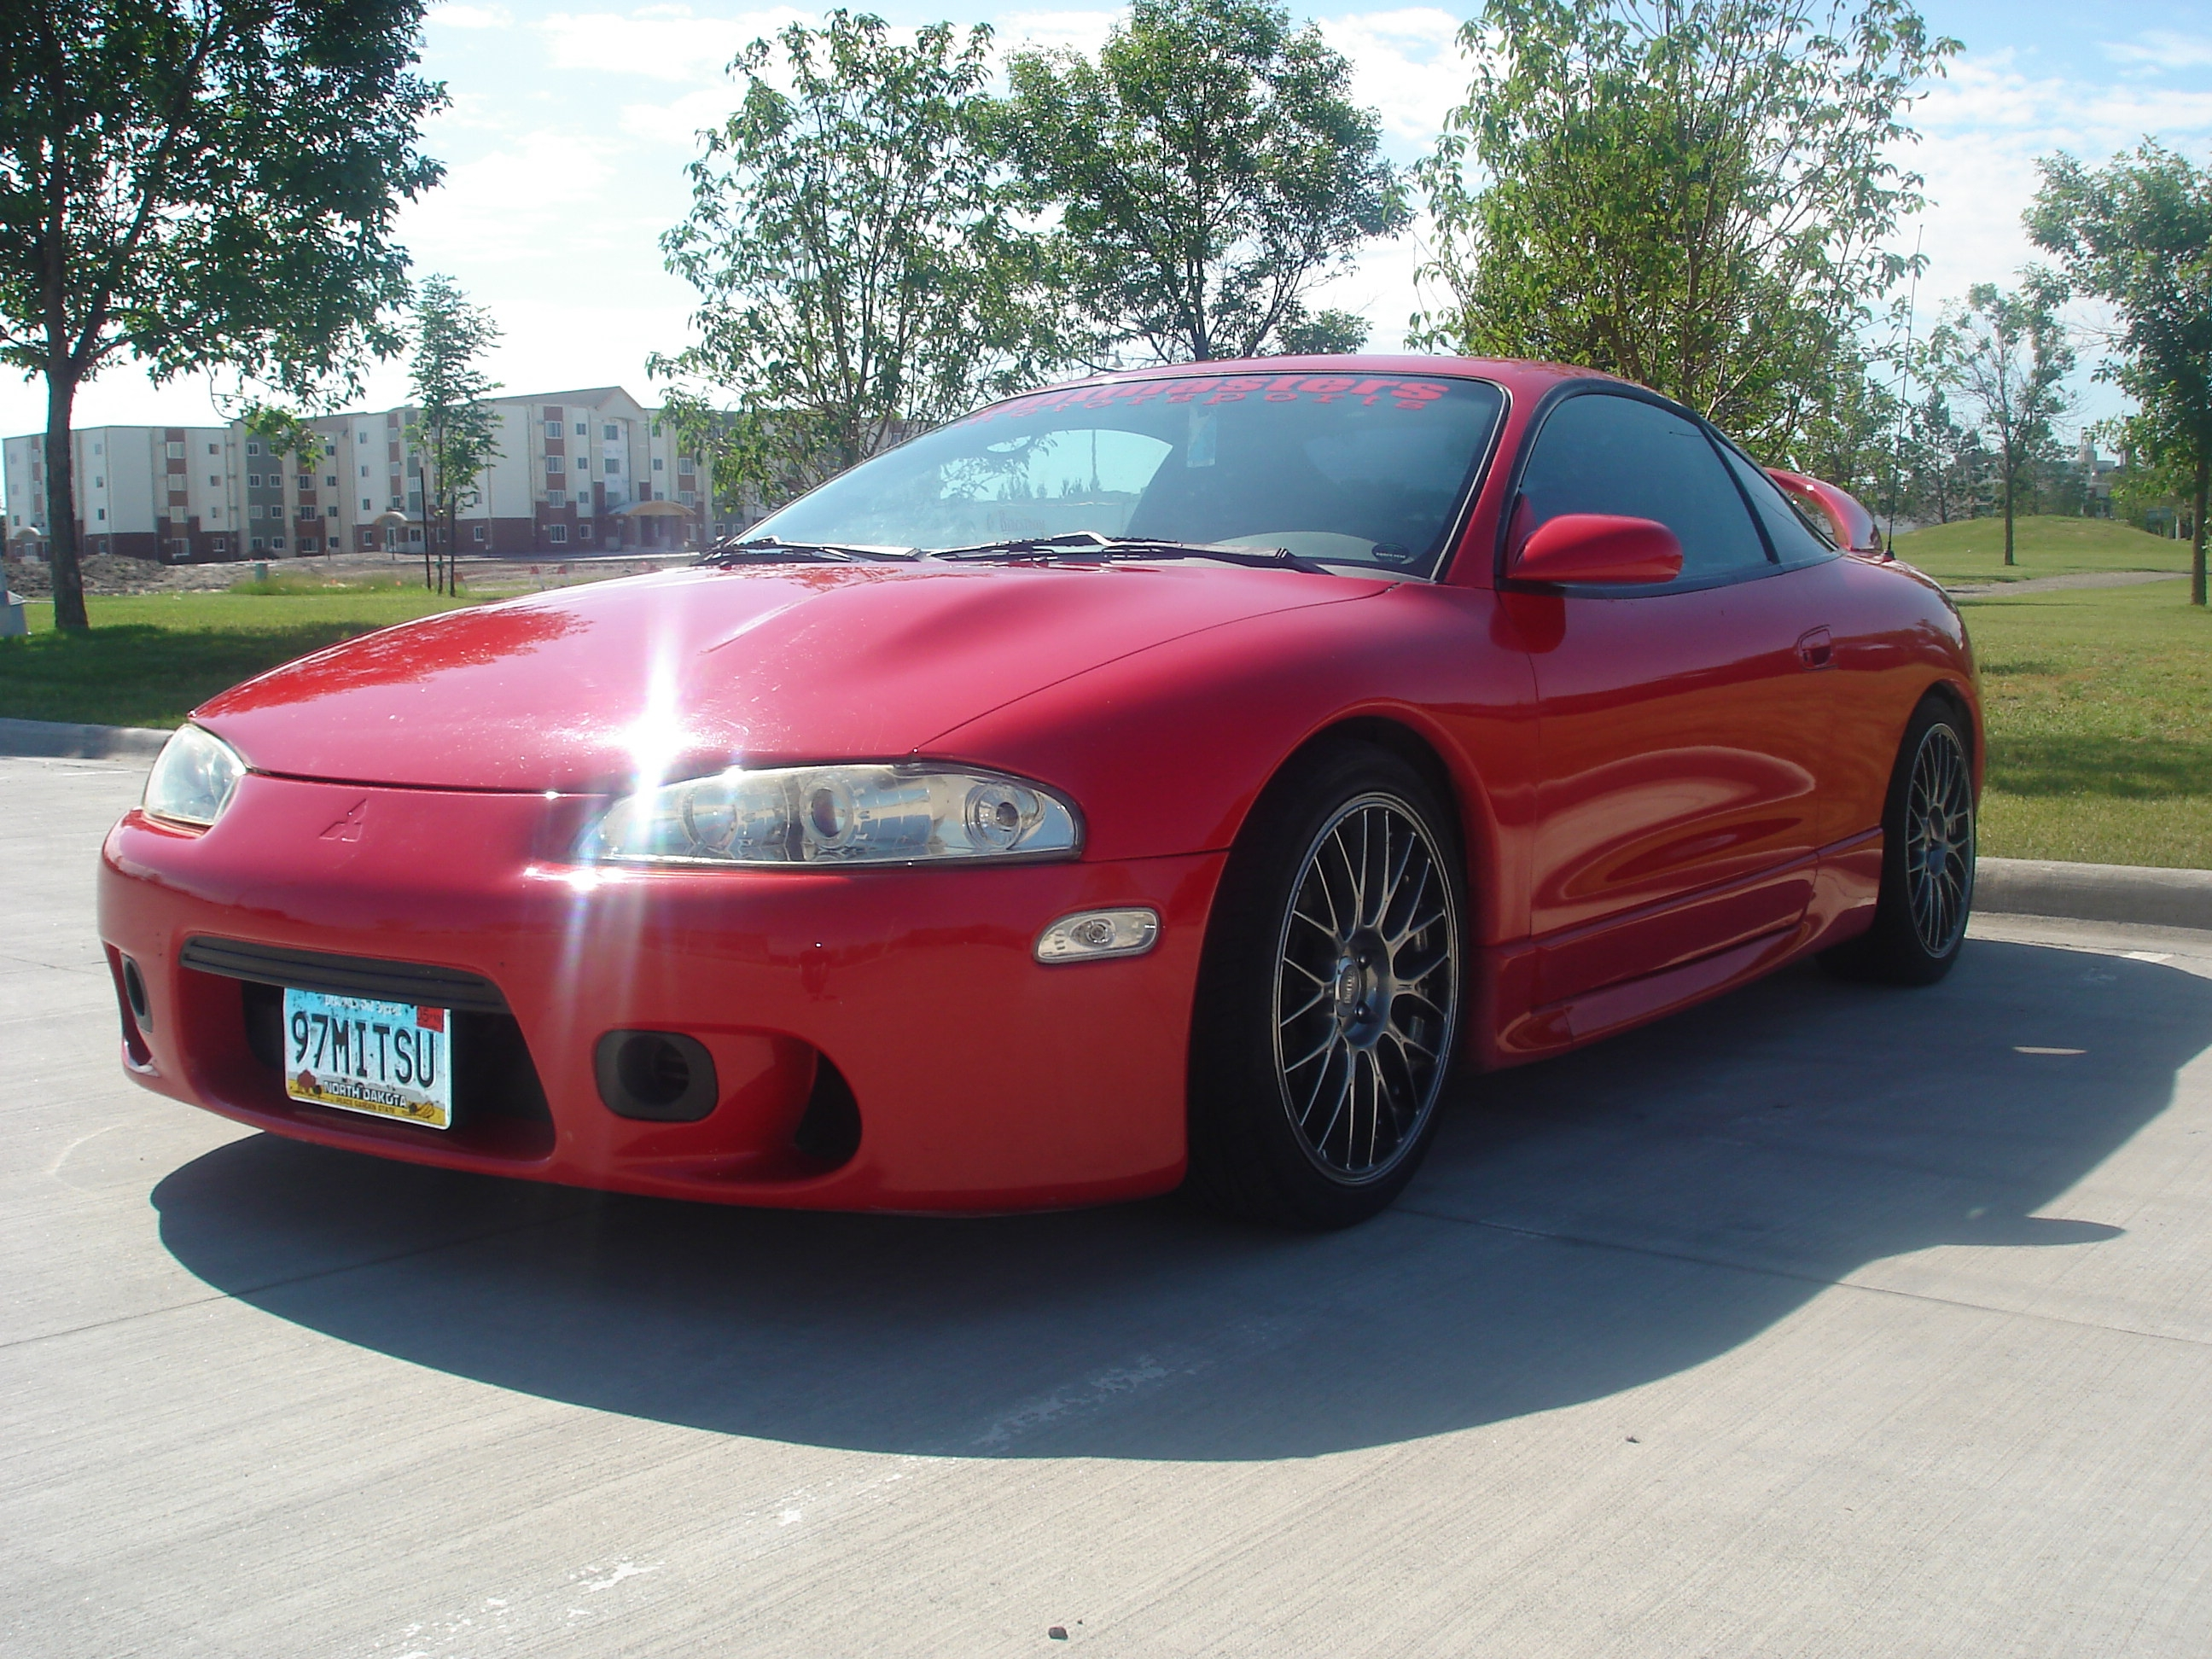 stringermitsu's 1997 Mitsubishi Eclipse in Grand Forks, ND